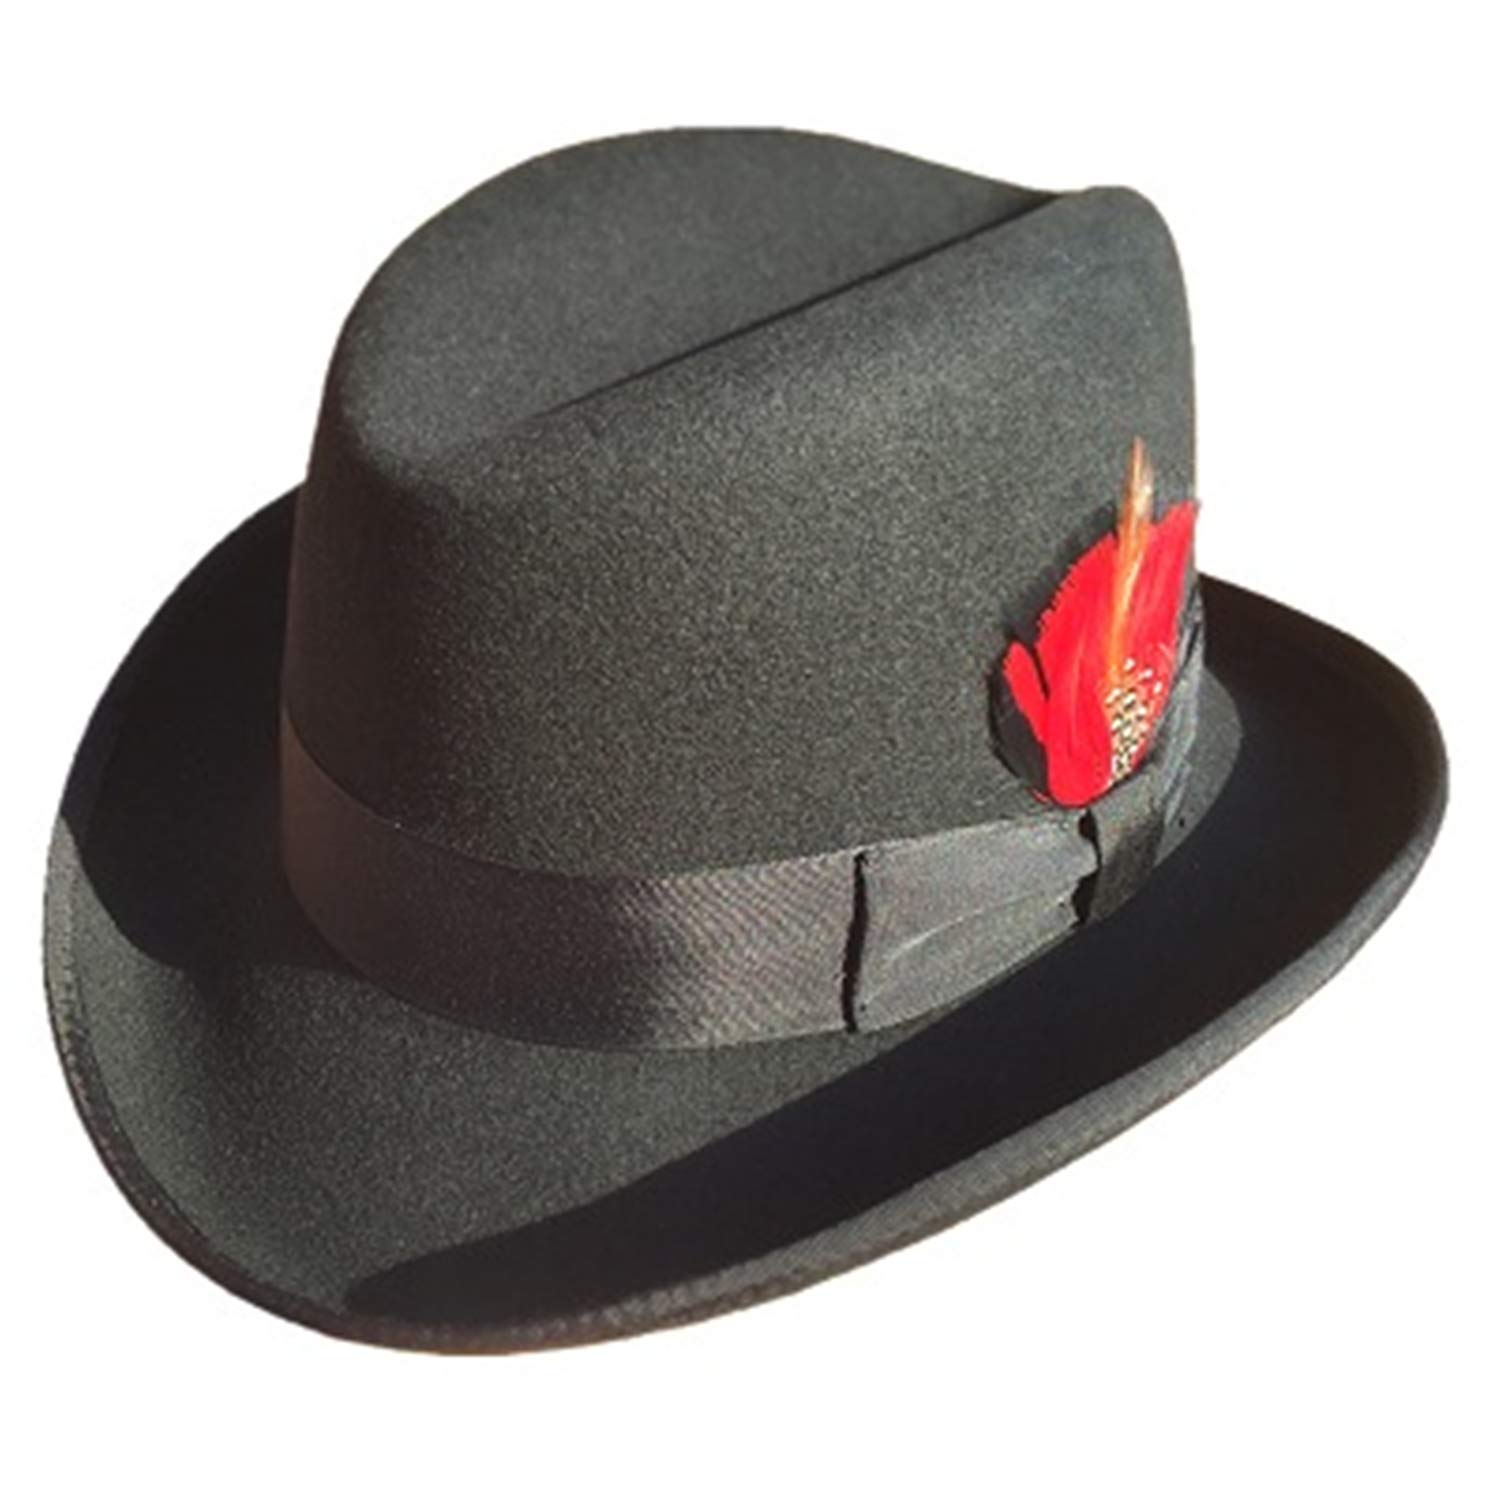 5b93822ad74aca Thinkin Classic Wool Felt Homburg Godfather Fedoras Bowler Hat for Men  Black Blue Brown Red: Amazon.co.uk: Clothing